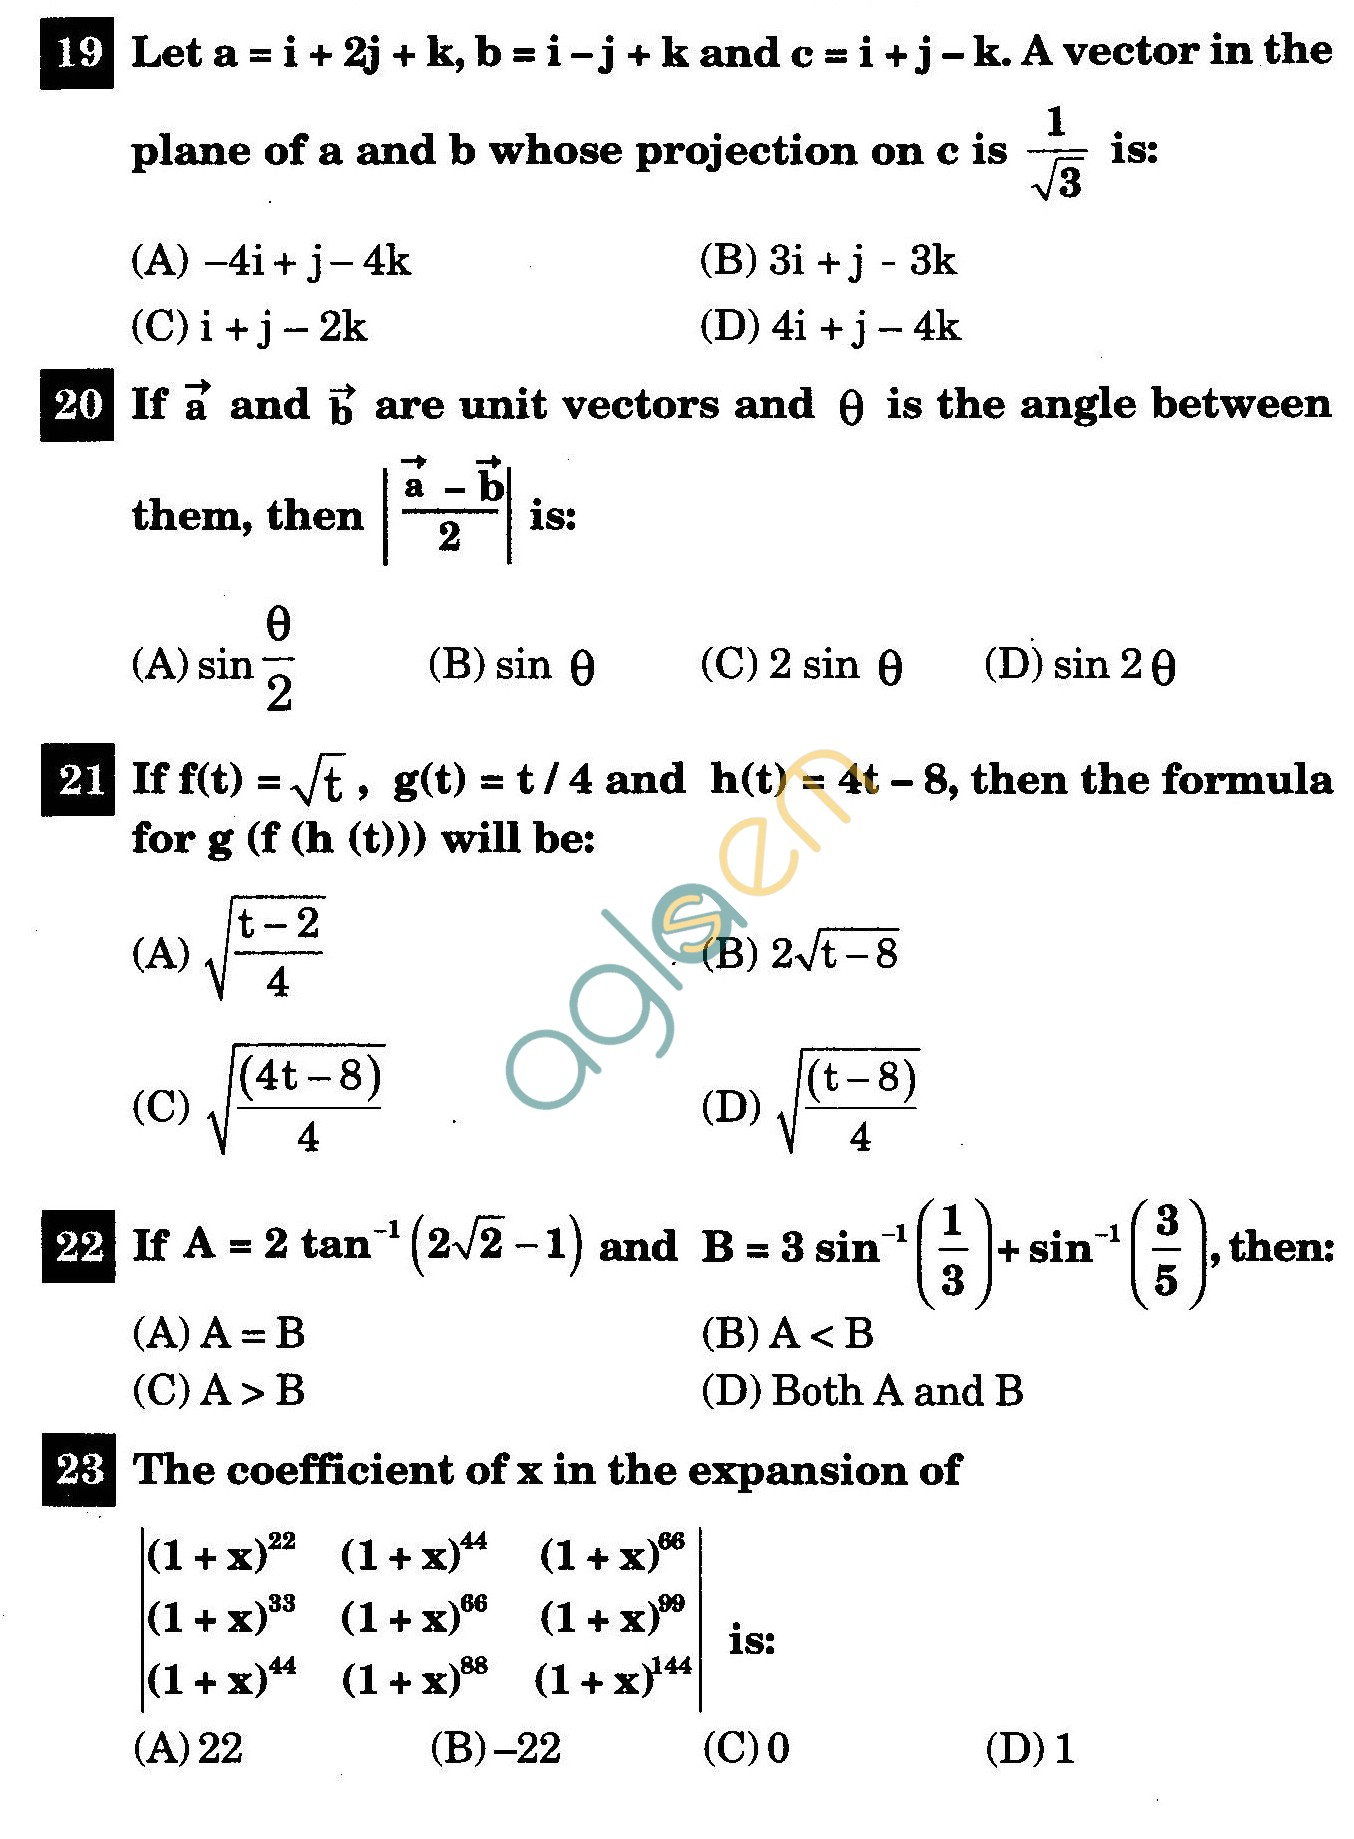 NSTSE 2011 Class XII PCM Question Paper with Answers - Mathematics